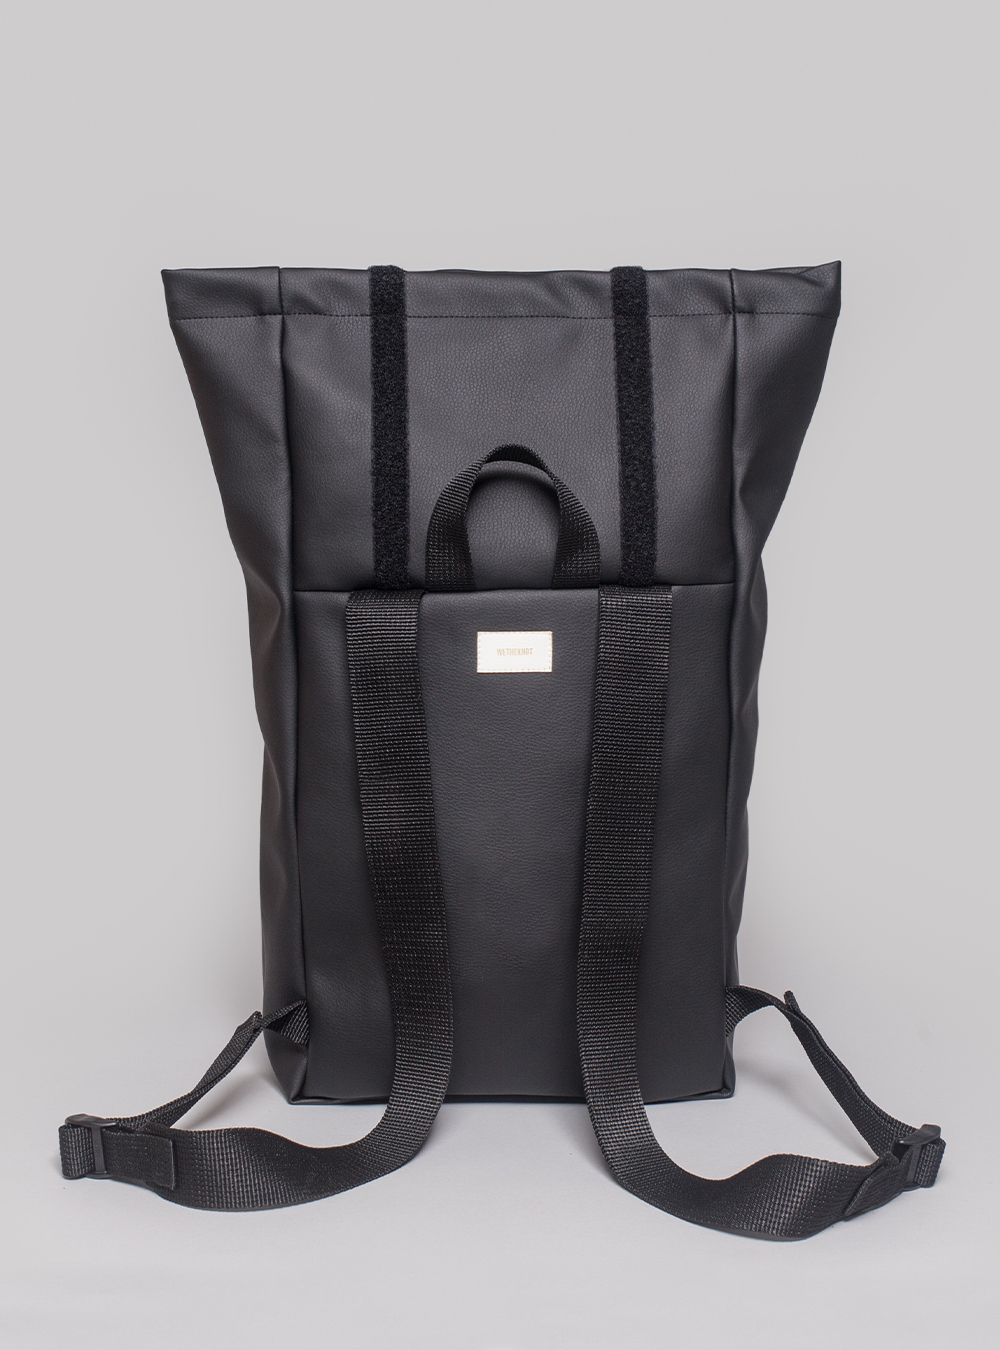 Roll–top backpack (black) in vegan leather, made in Portugal by wetheknot.